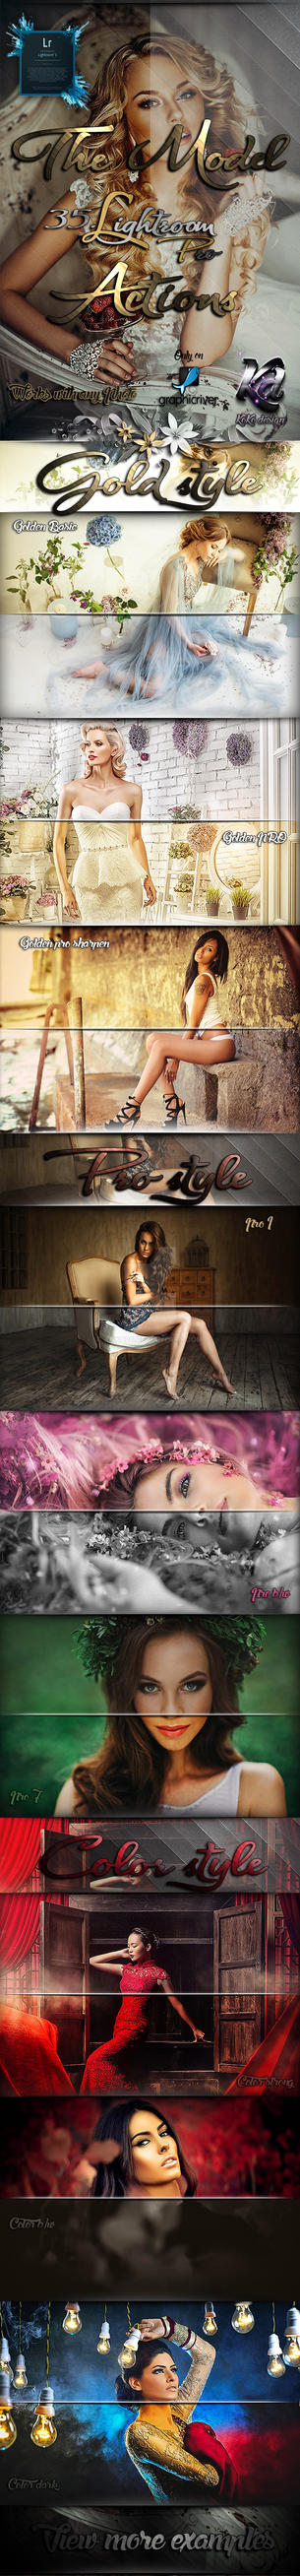 The Model Pro Lightroom Presets by koko26